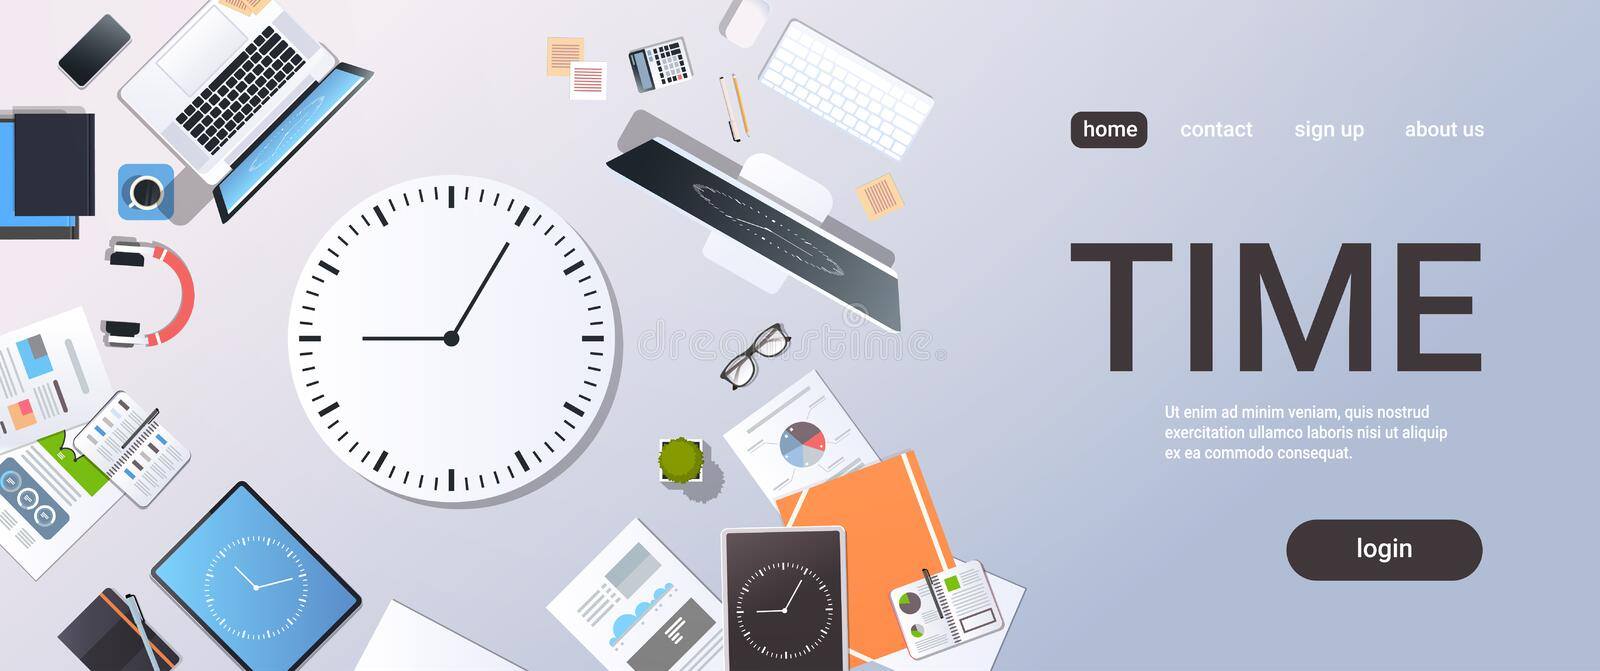 Time management deadline business timing concept top angle view desktop laptop smartphone tablet screen clock paper vector illustration